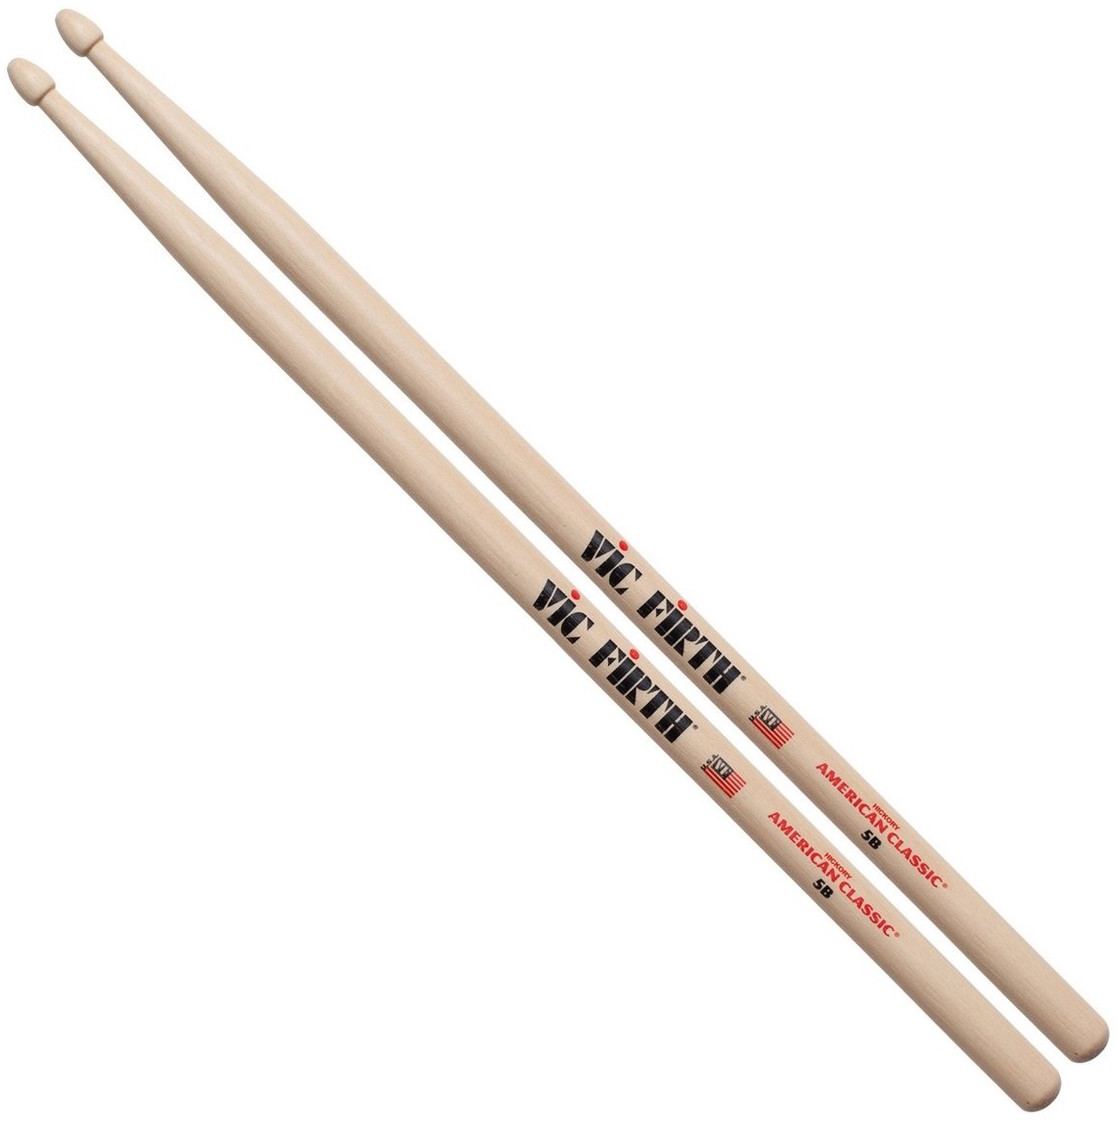 Vic Firth American Classic 5B Wood Drum Sticks